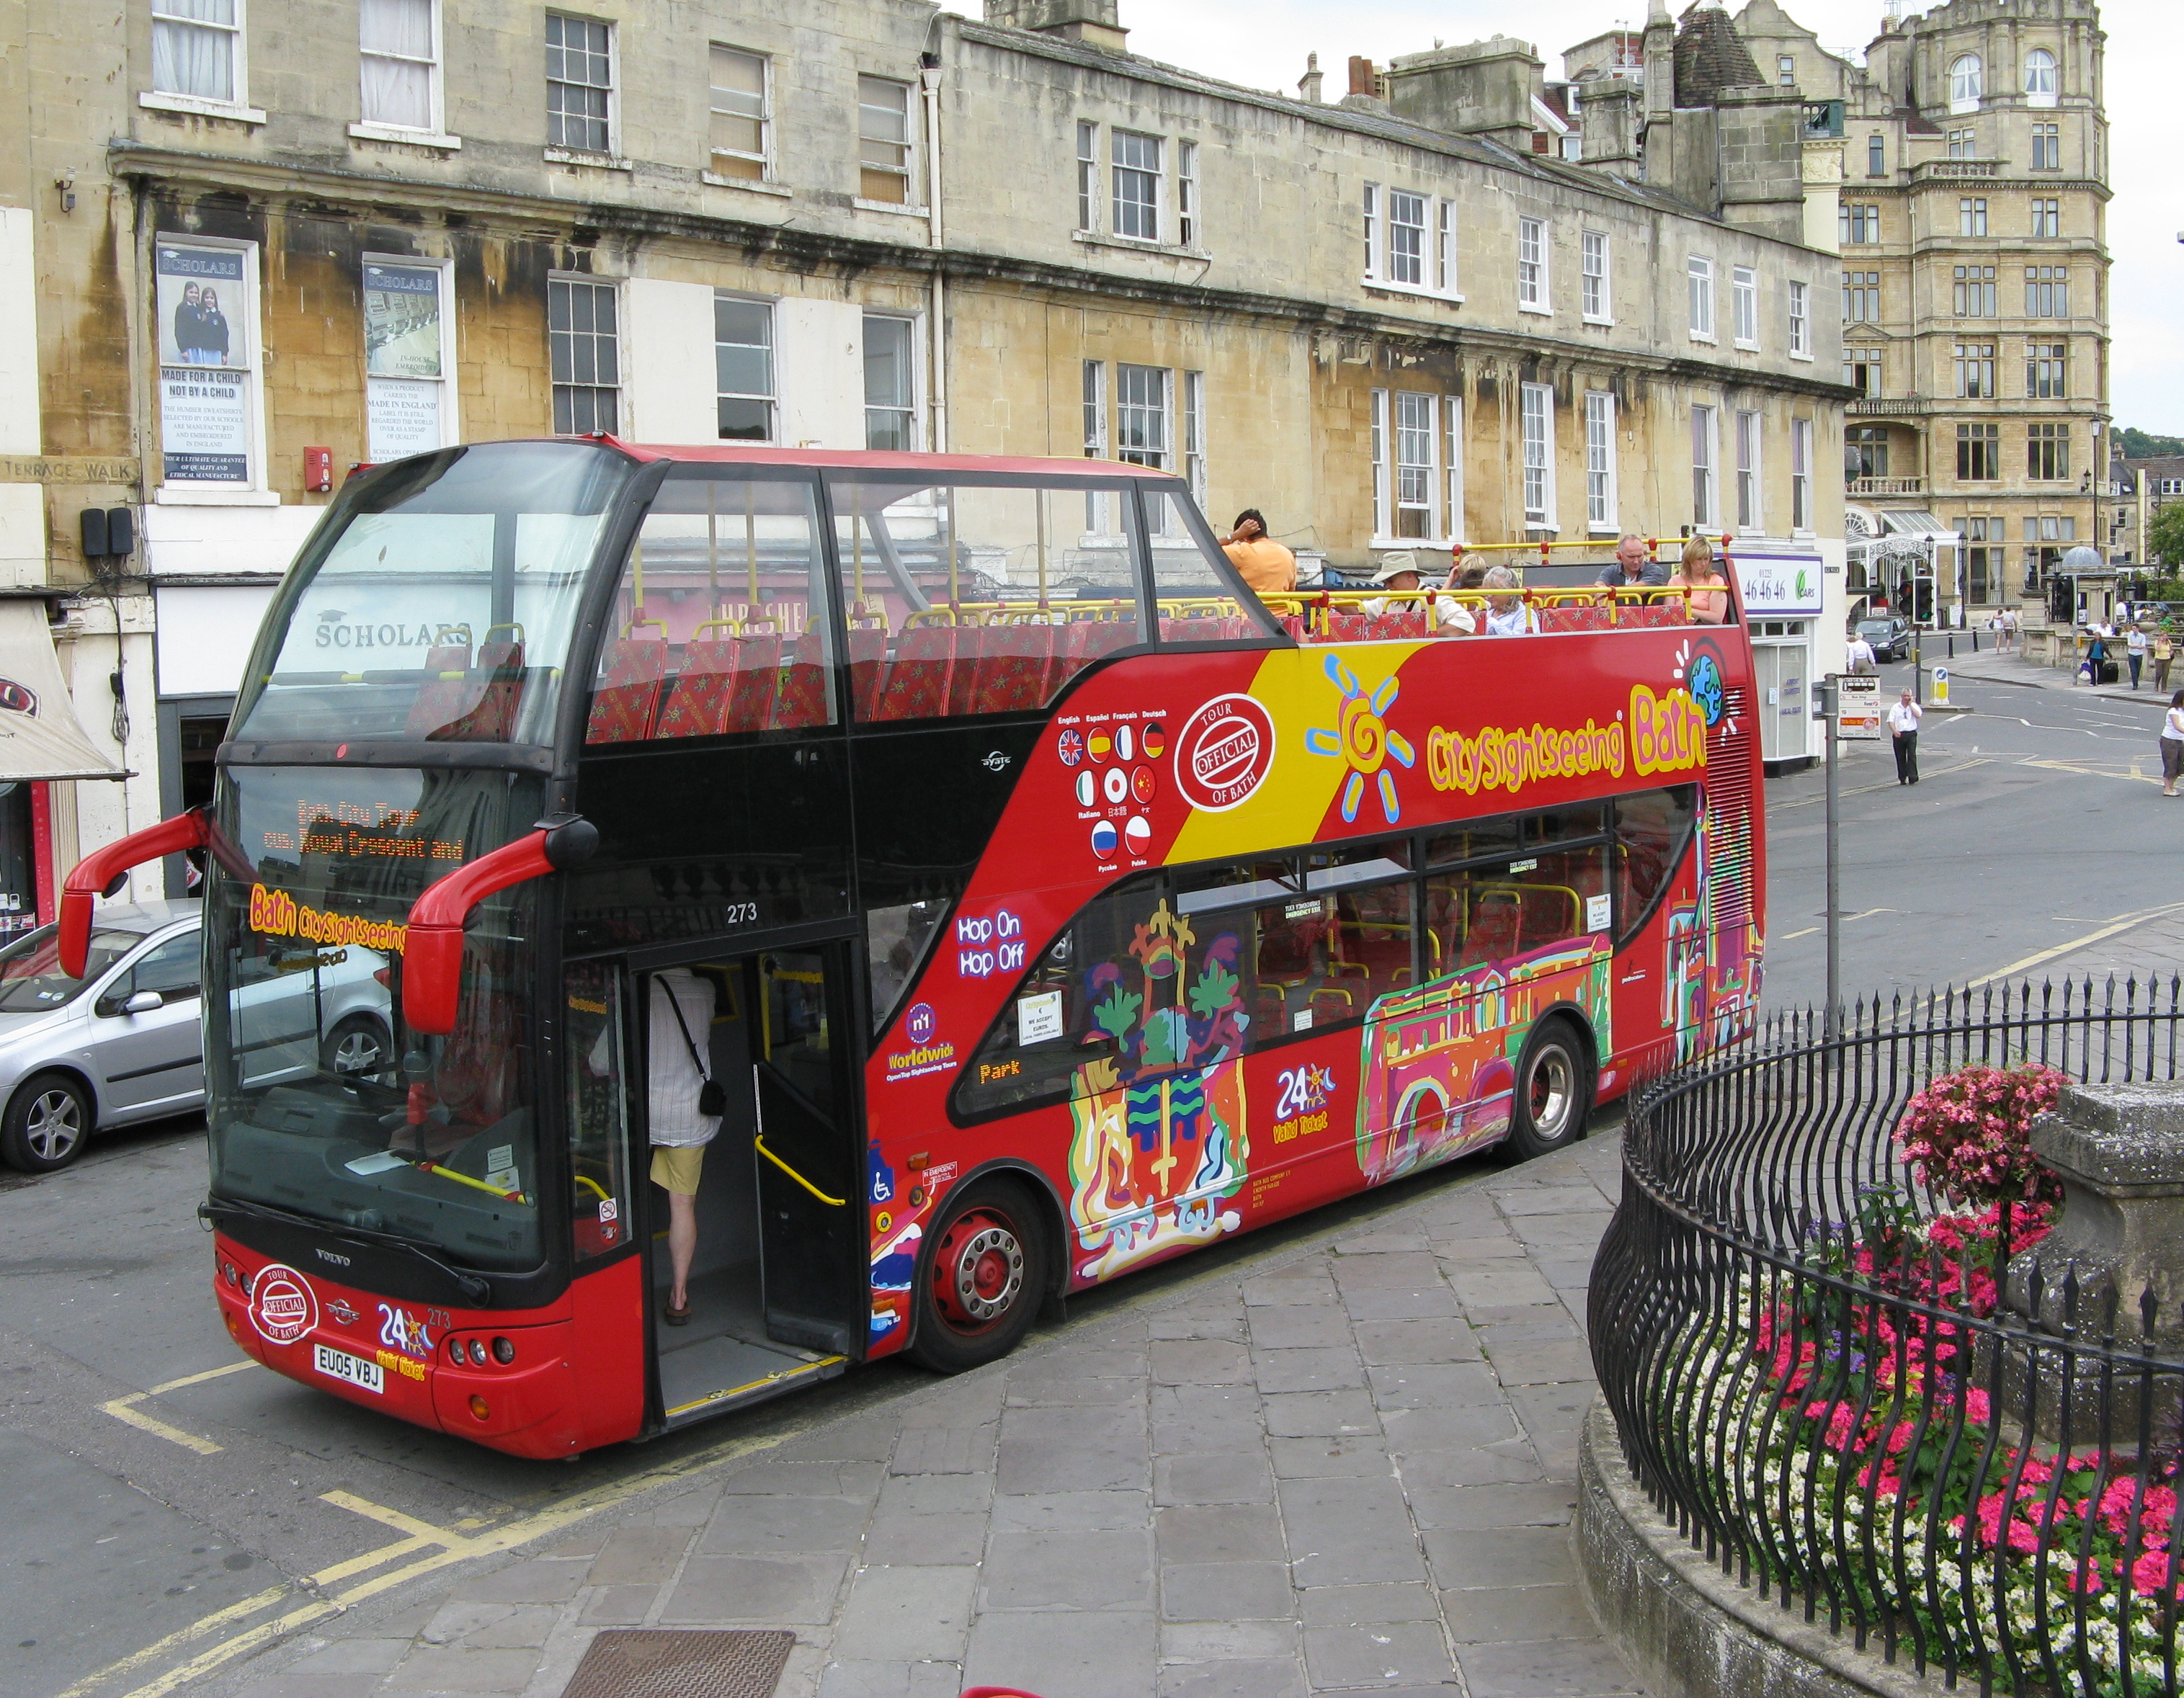 Tour_bus_in_bath_england_arp